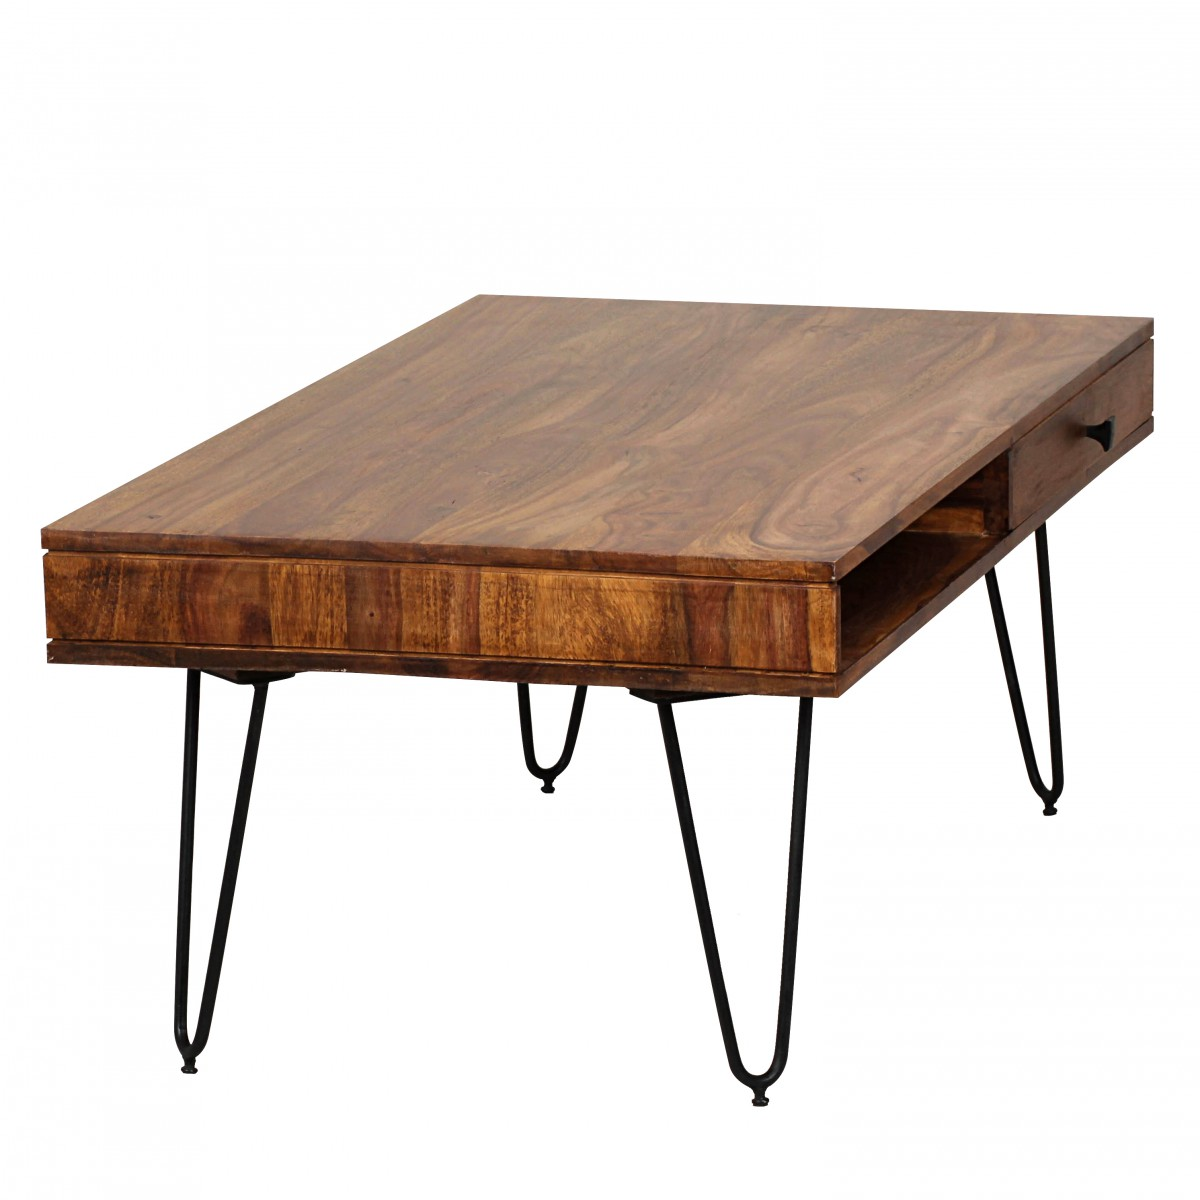 Wohnling solid wood sheesham coffee table 120 x 60 x 40 cm for Coffee table 60 x 40